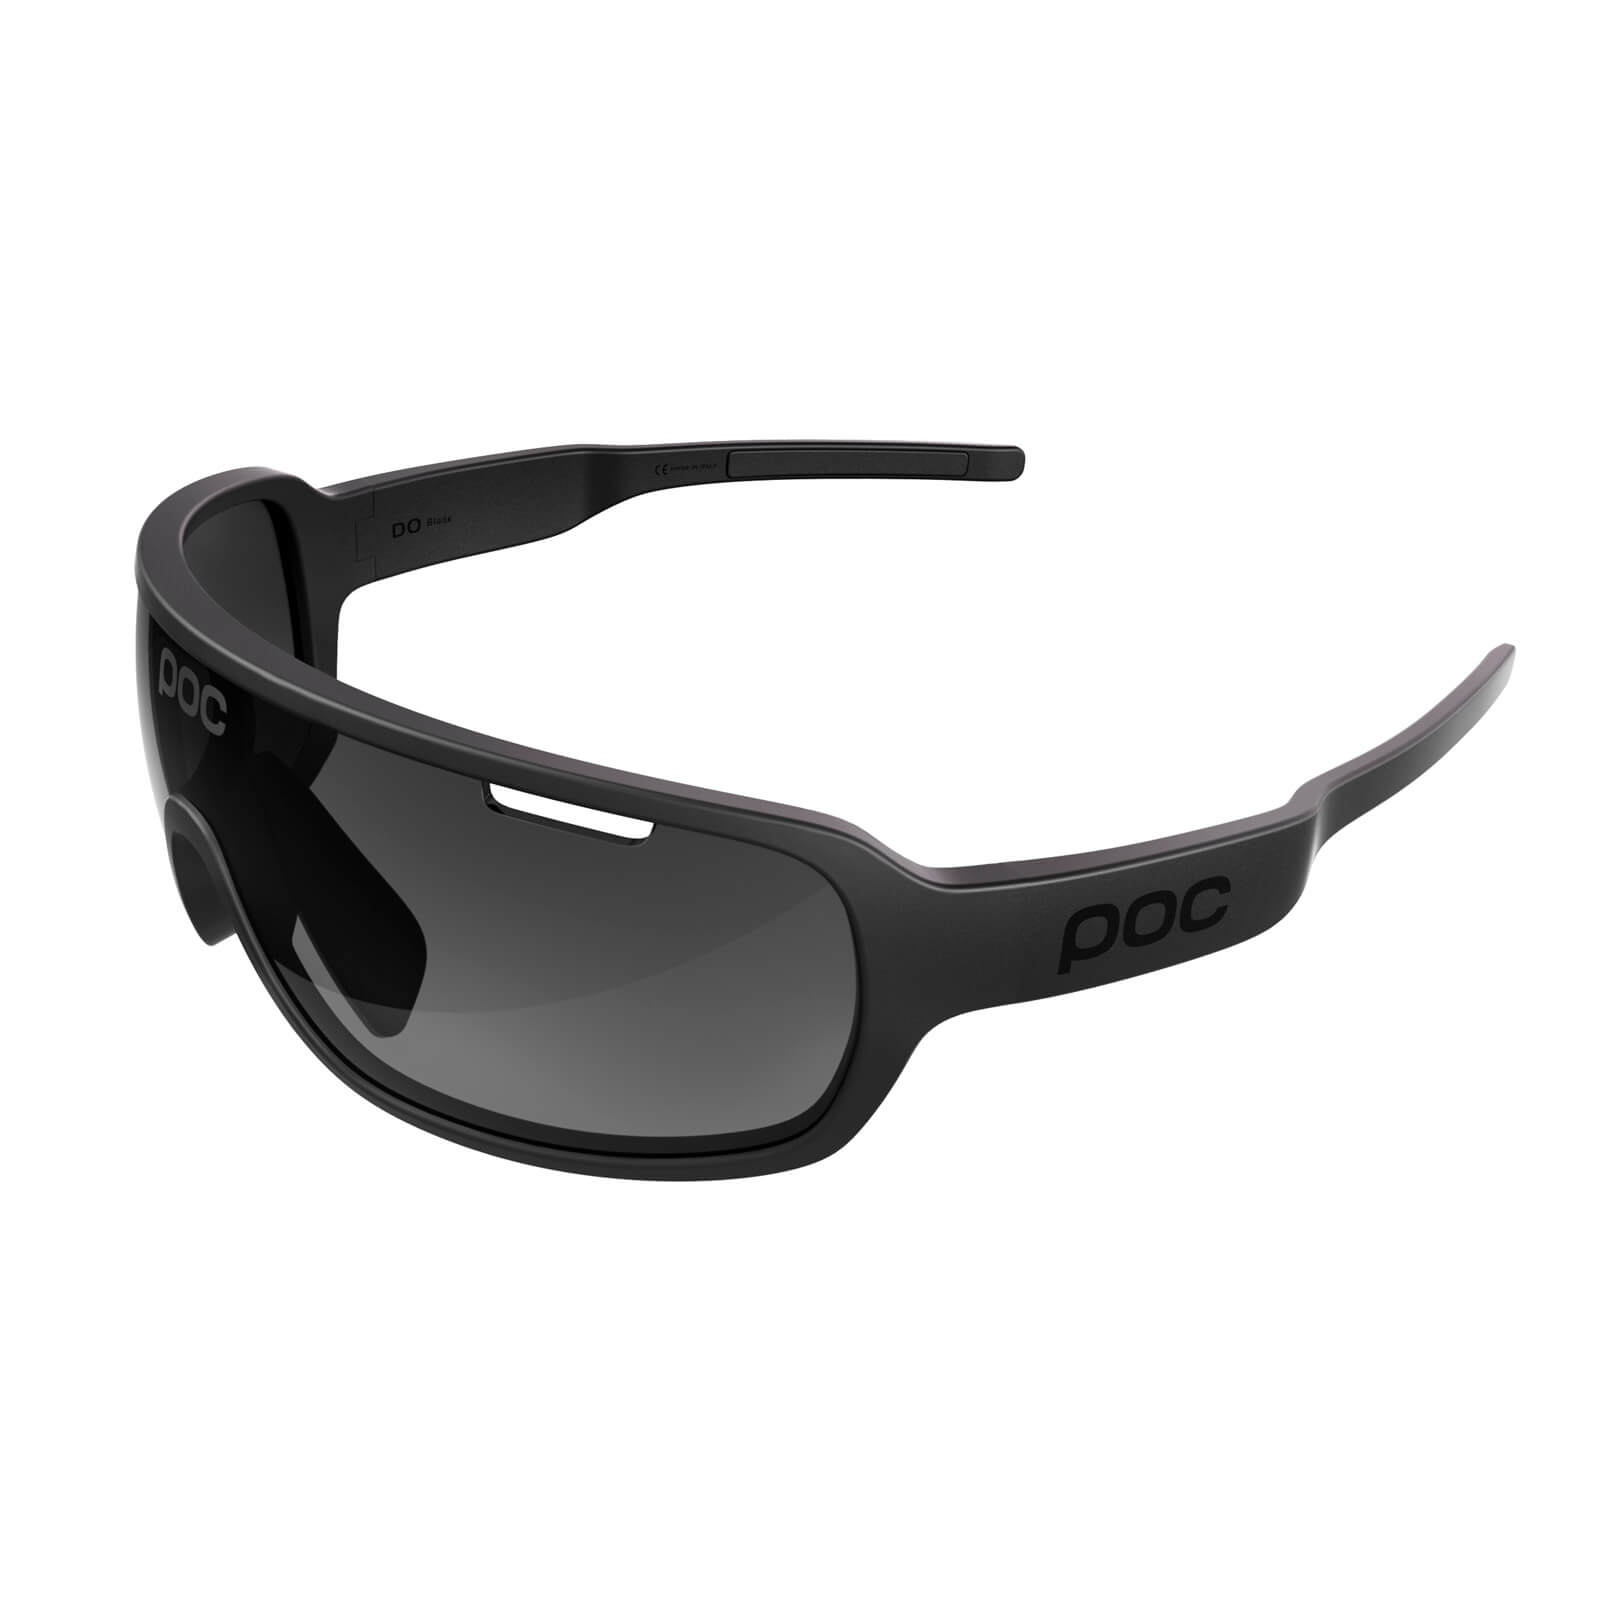 POC DO Blade Sunglasses - Uranium Black